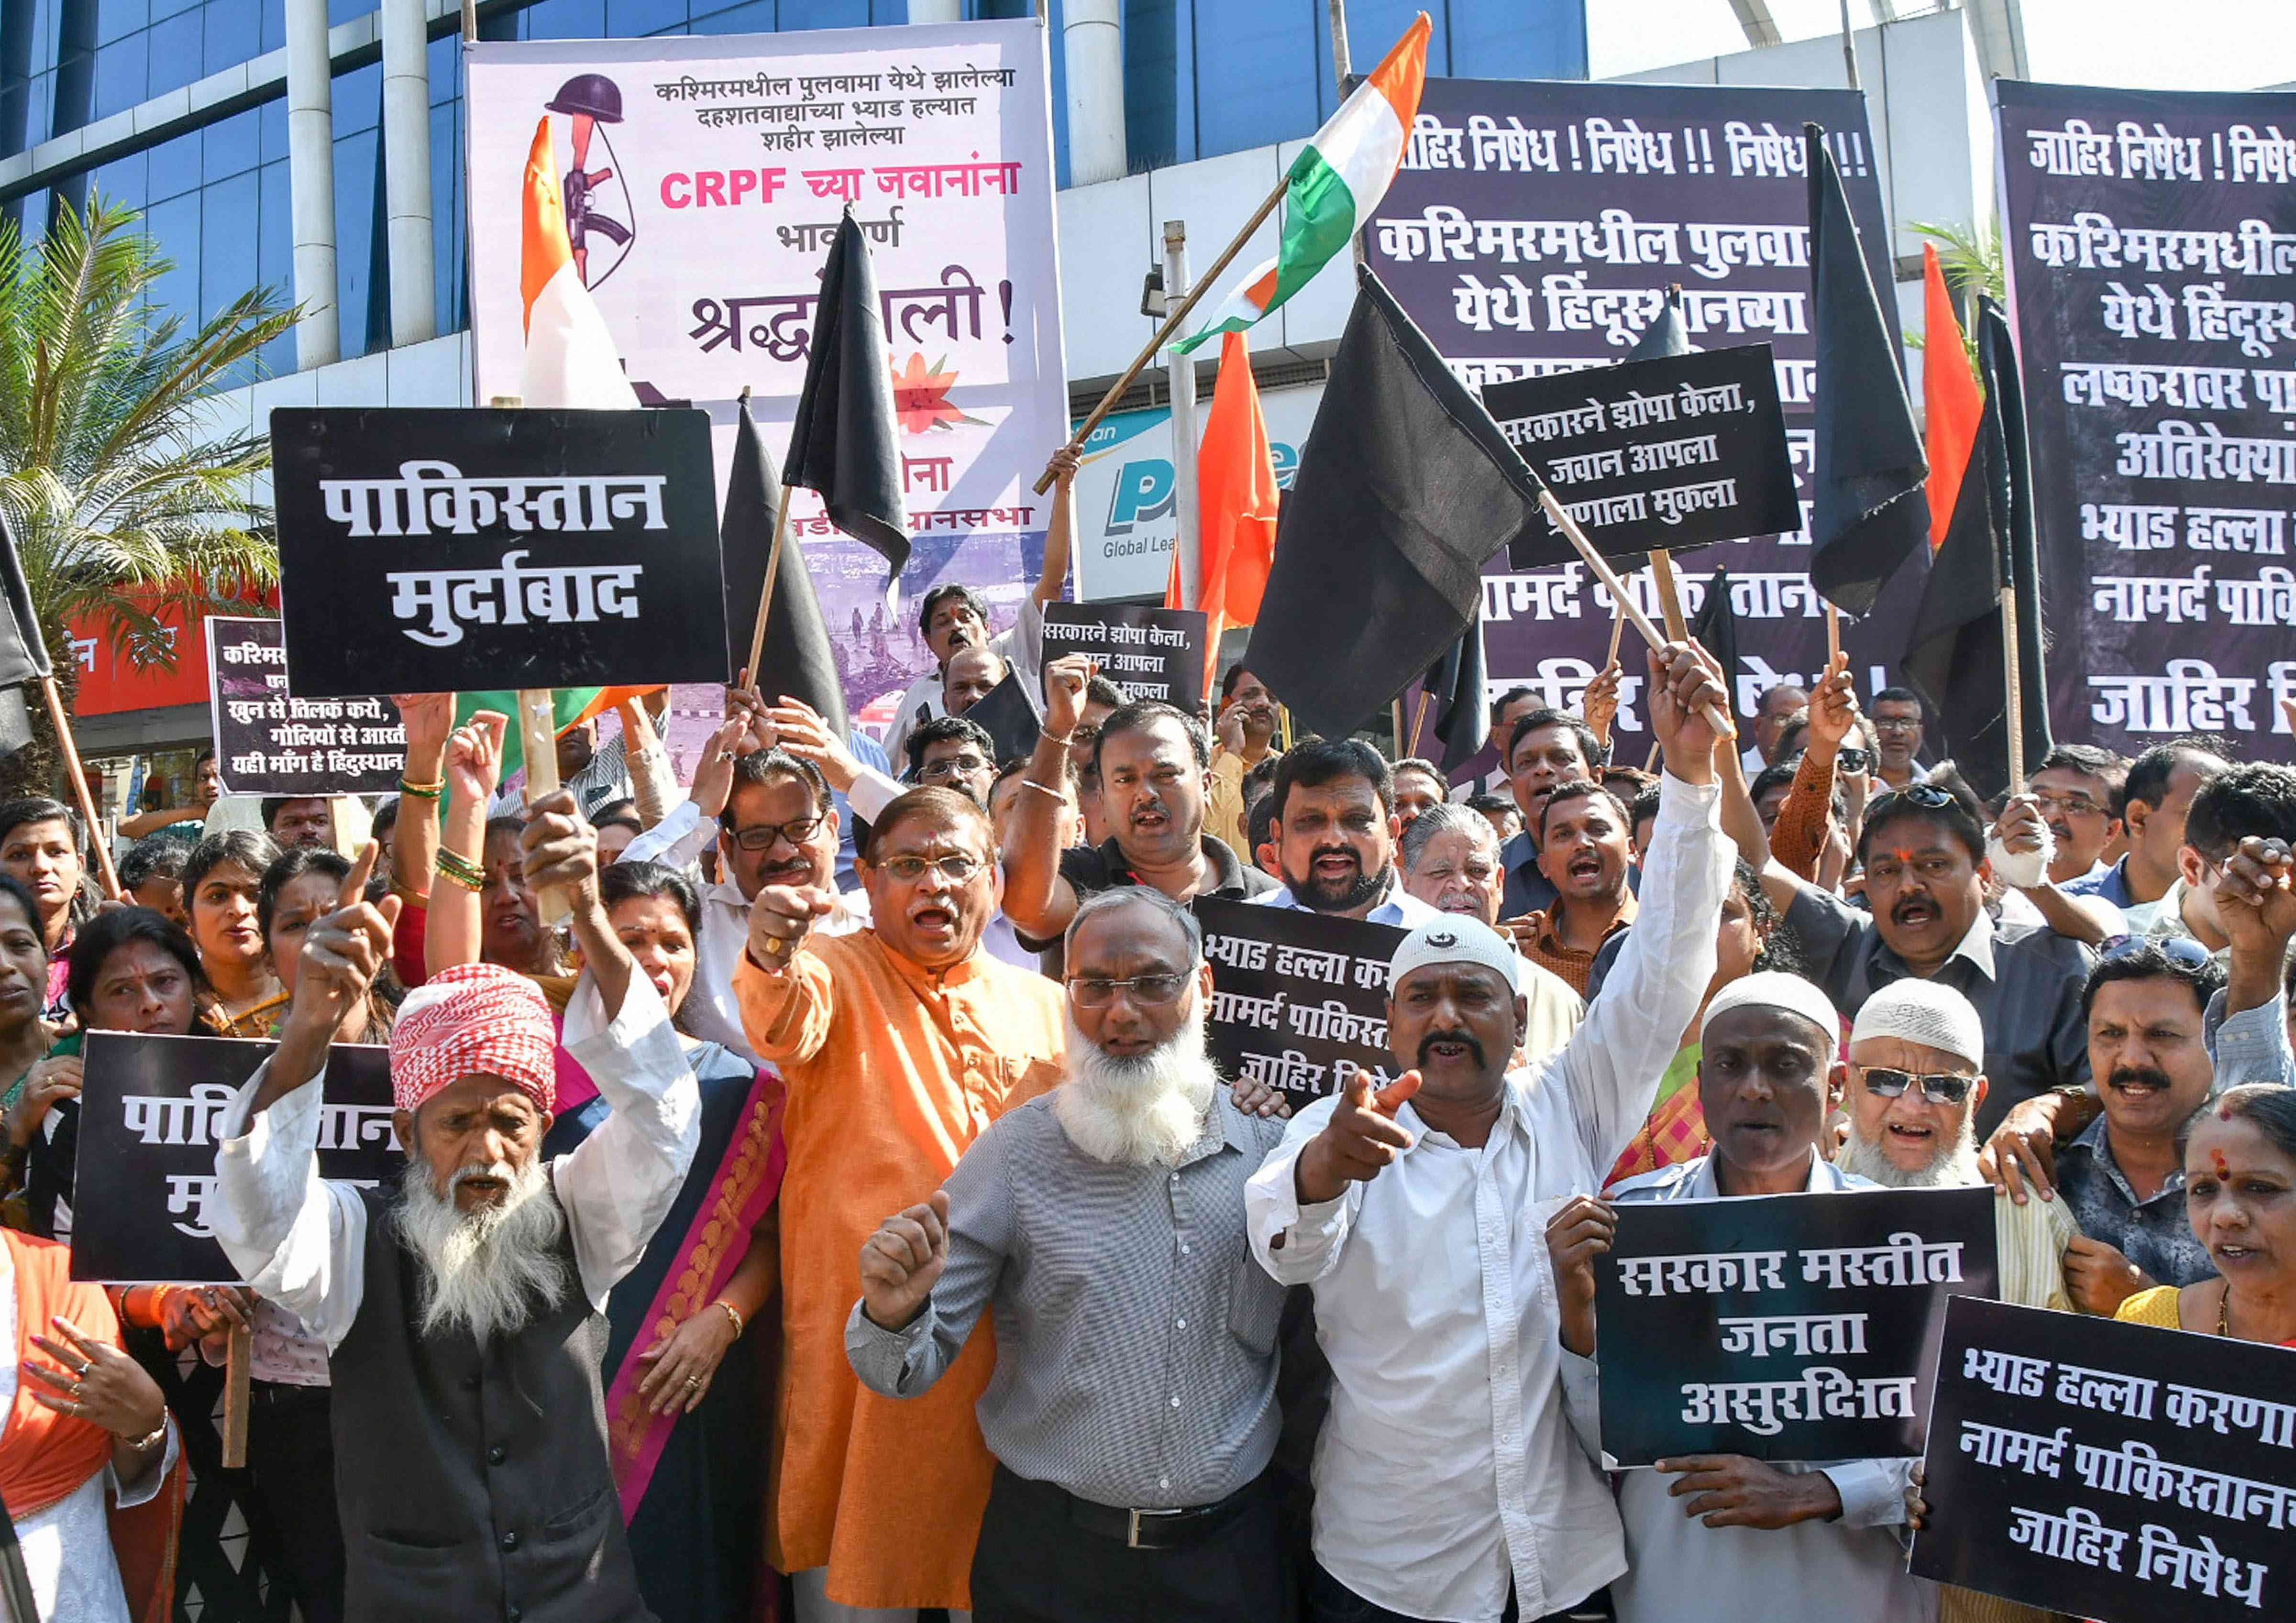 Shiv Sena workers stage a protest in Mumbai's Lalbaug. Credit: PTI.